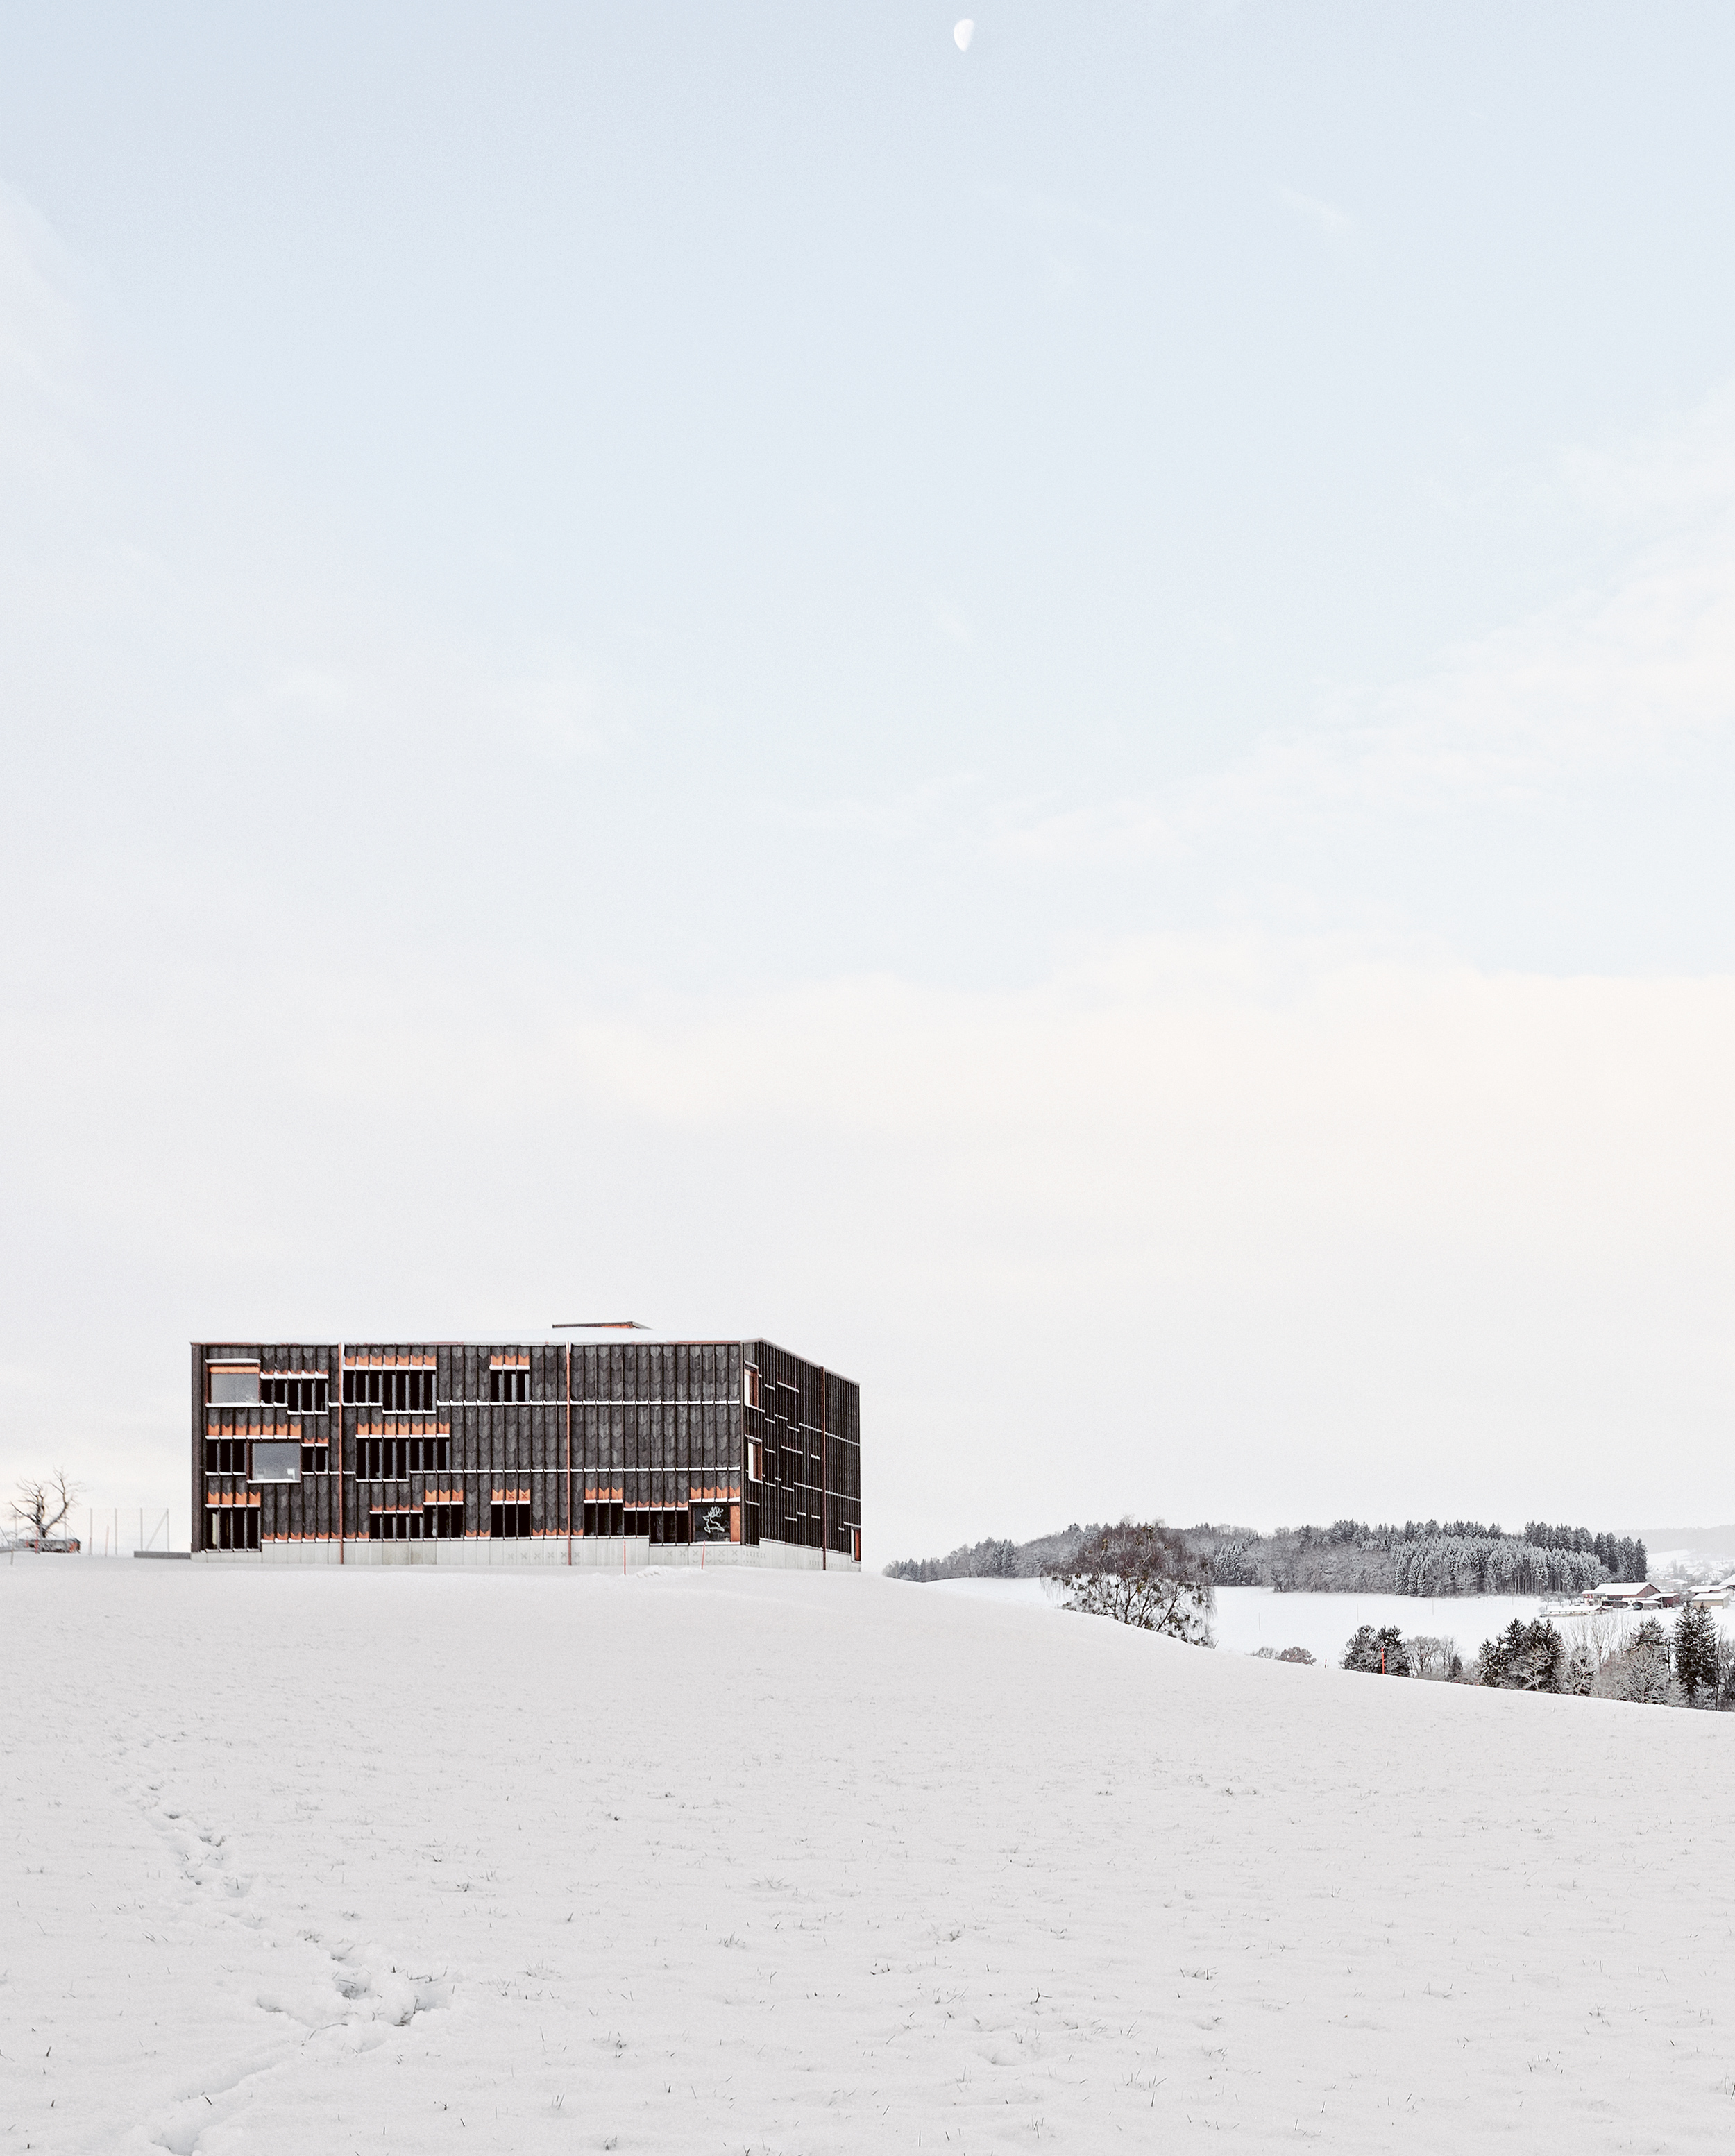 School in Orsonnens, Fribourg